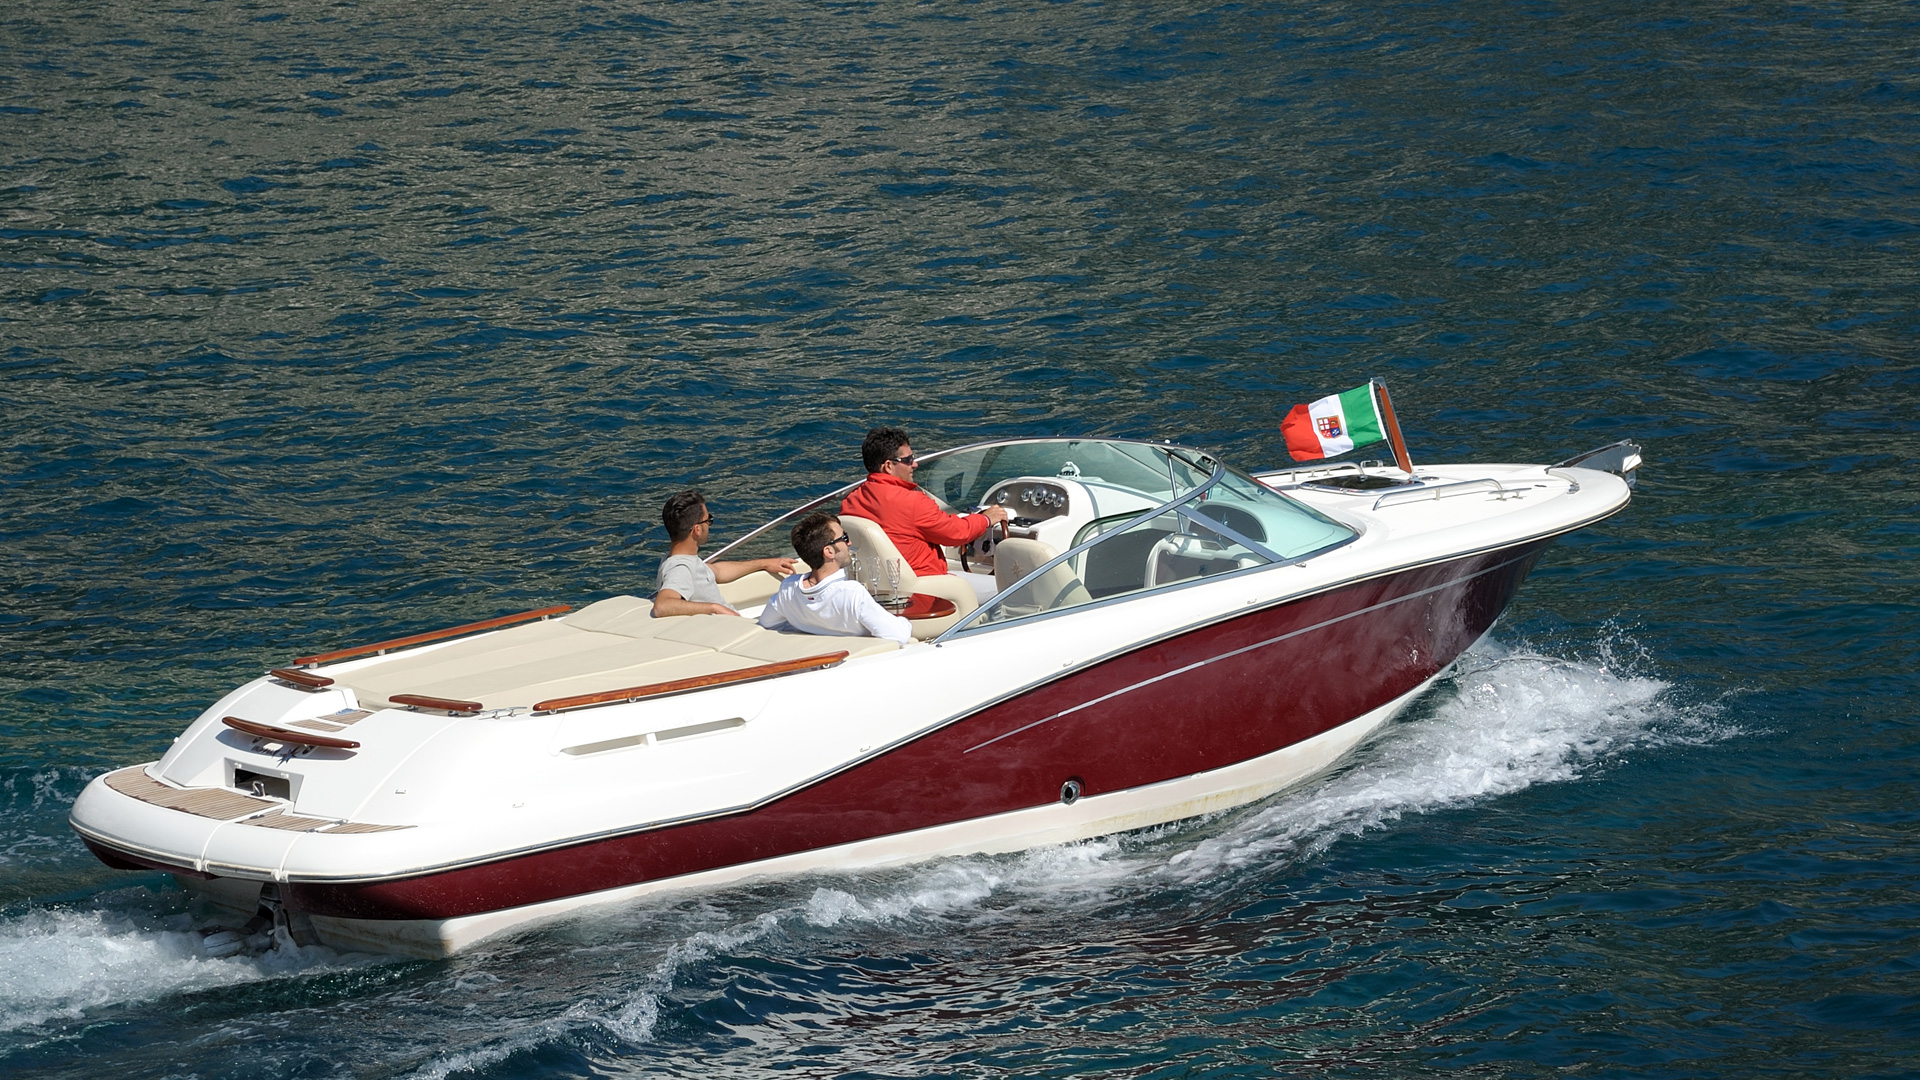 Jeanneau runabout premium boat charter for Runabout boats with outboard motors